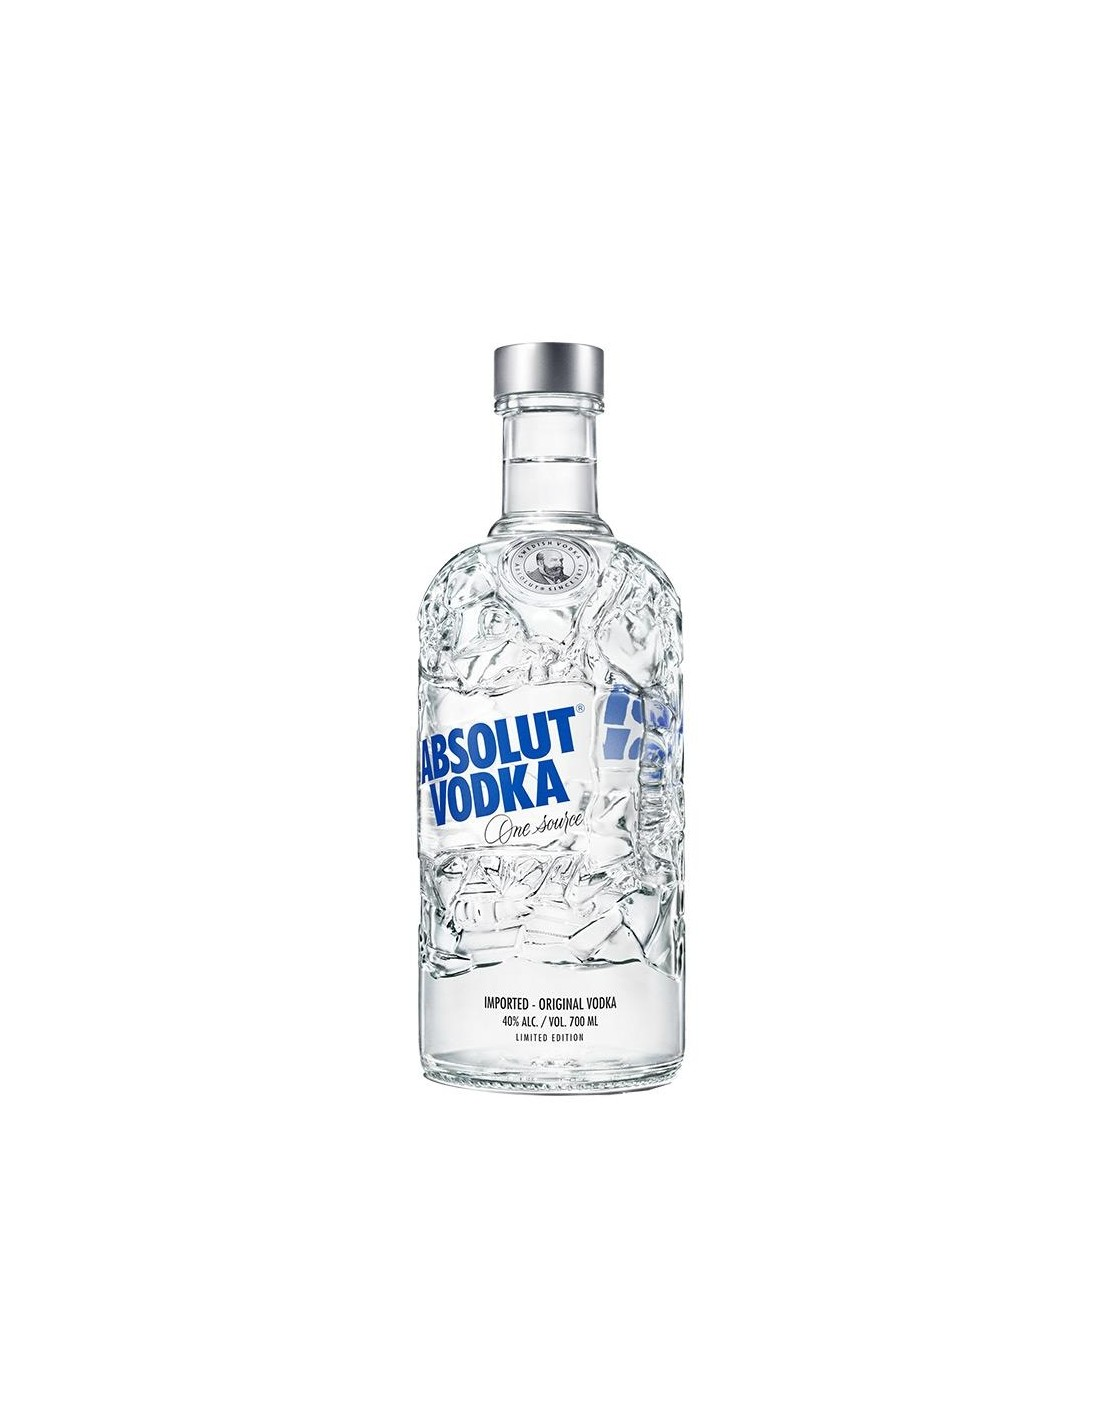 Vodca Absolut Recycled 40% alc., 0.7L, Suedia